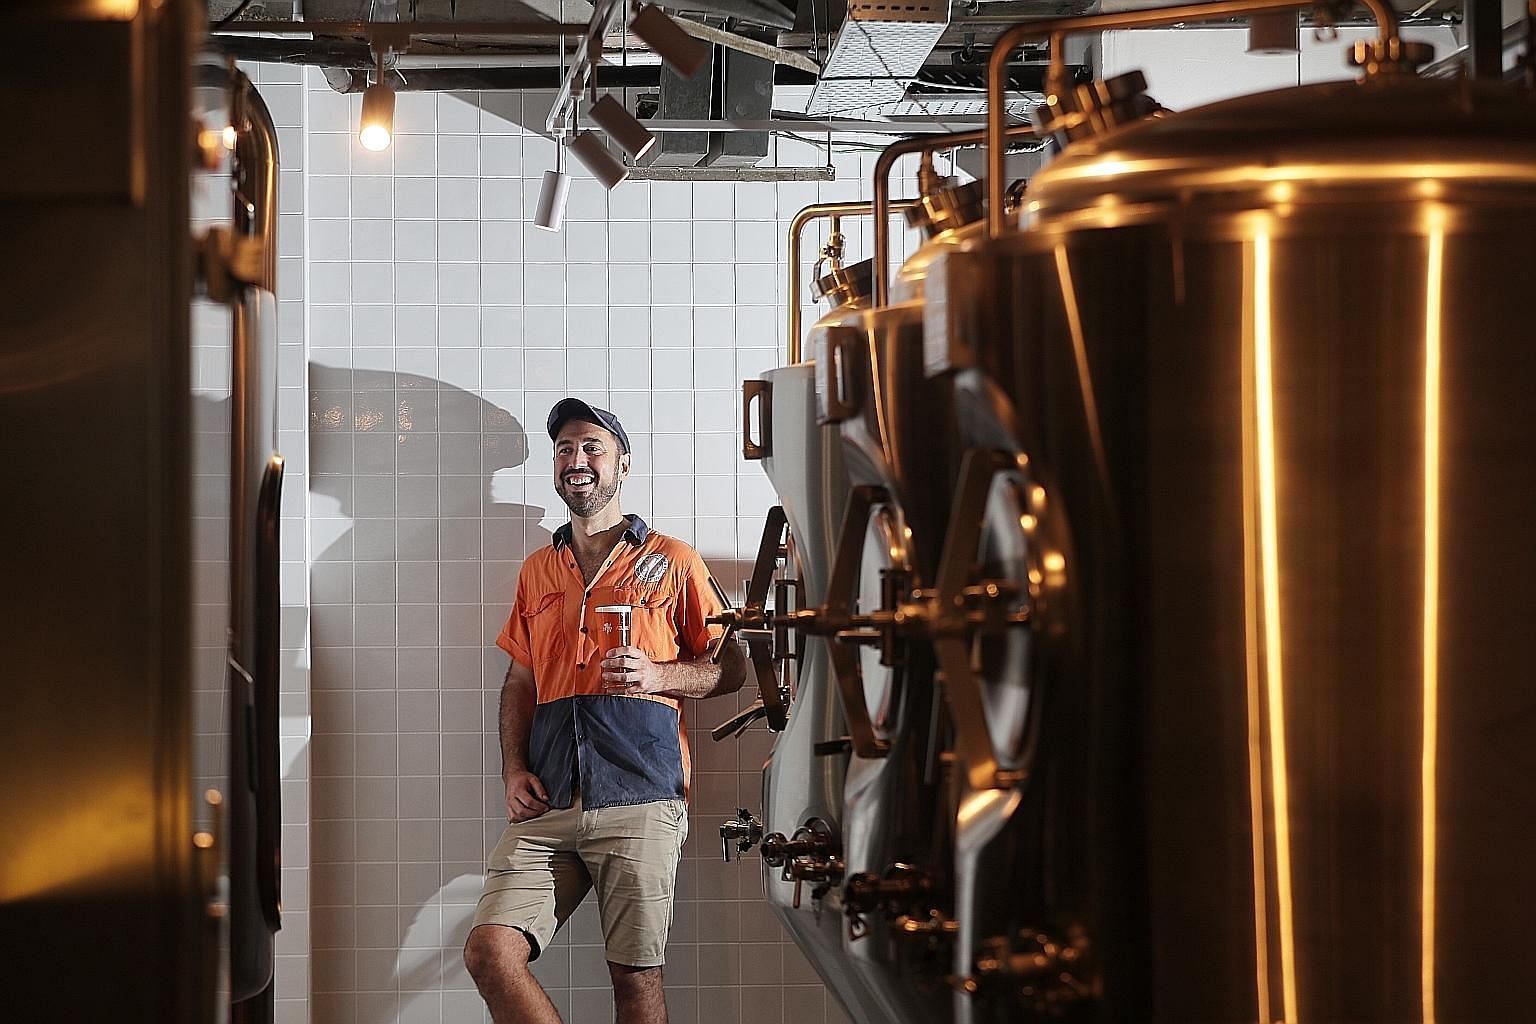 Mr Jum Ryan, regional brewer at Little Creatures Singapore, has already started work on a Singapore-specific beer for the brewpub. Customers at Little Creatures Singapore can expect to have both bottles and beers on tap from the brand's core range.